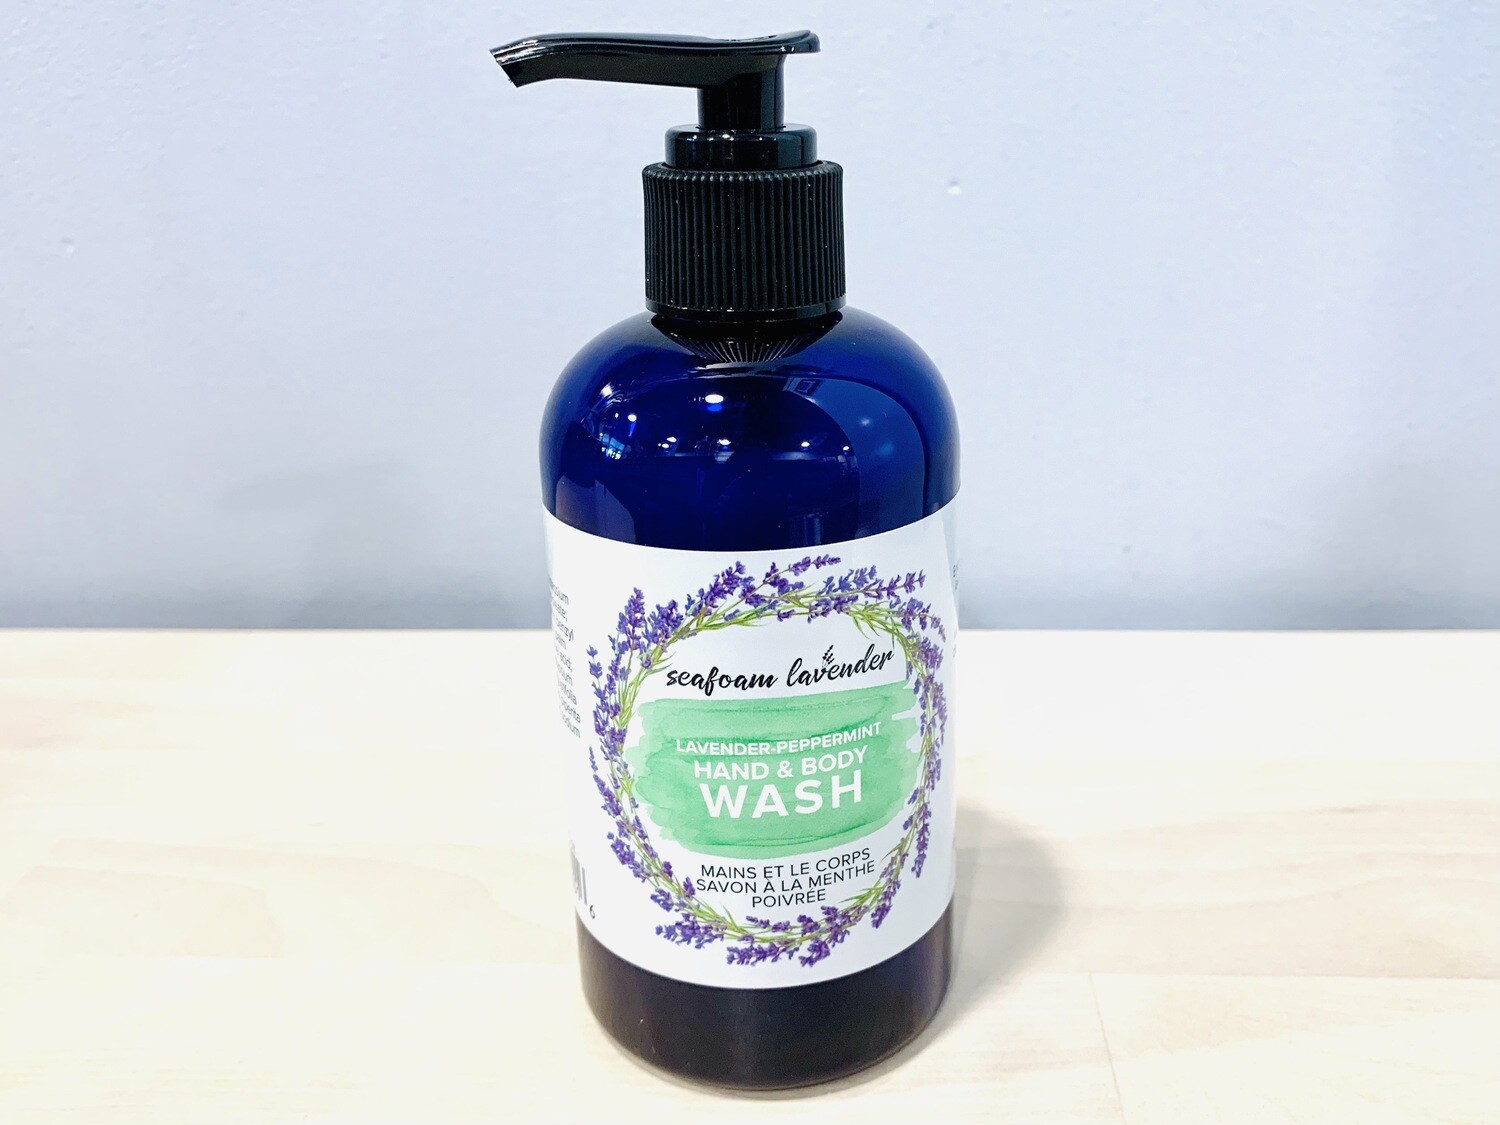 Lavender & Peppermint Hand & Body Wash, Large